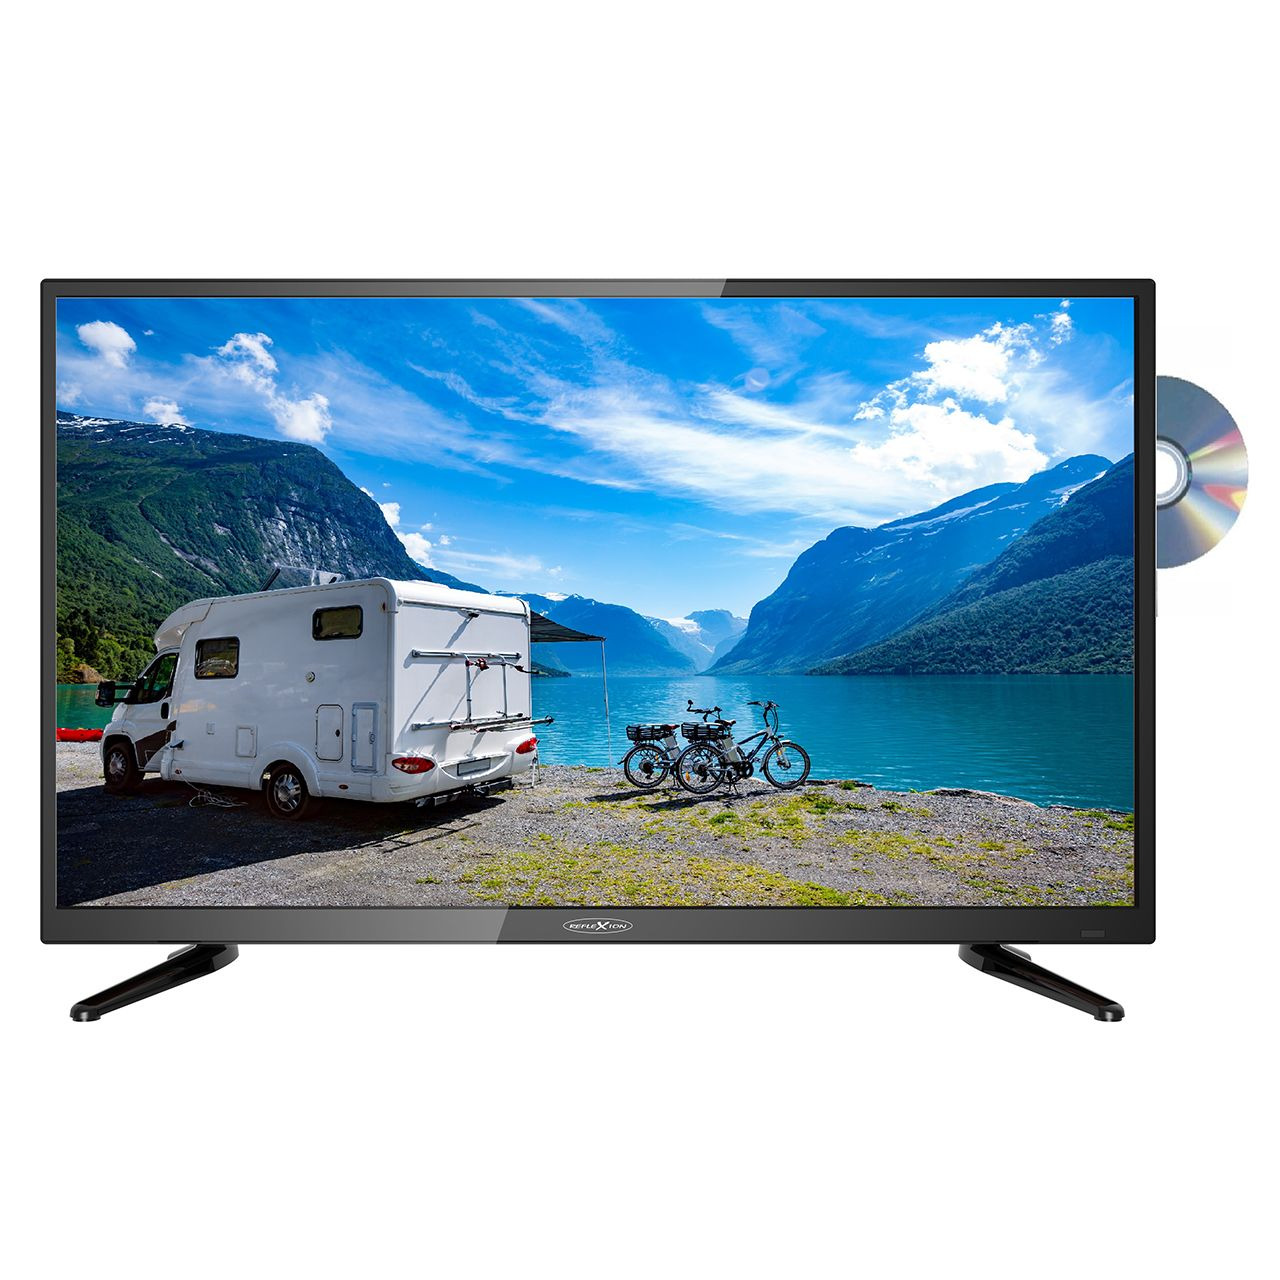 Reflexion 5-in-1-LED-TV LDDW320- 80 cm (32)- DVD-Player- DVB-S-S2-C-T-T2- H-265-HEVC- 12V